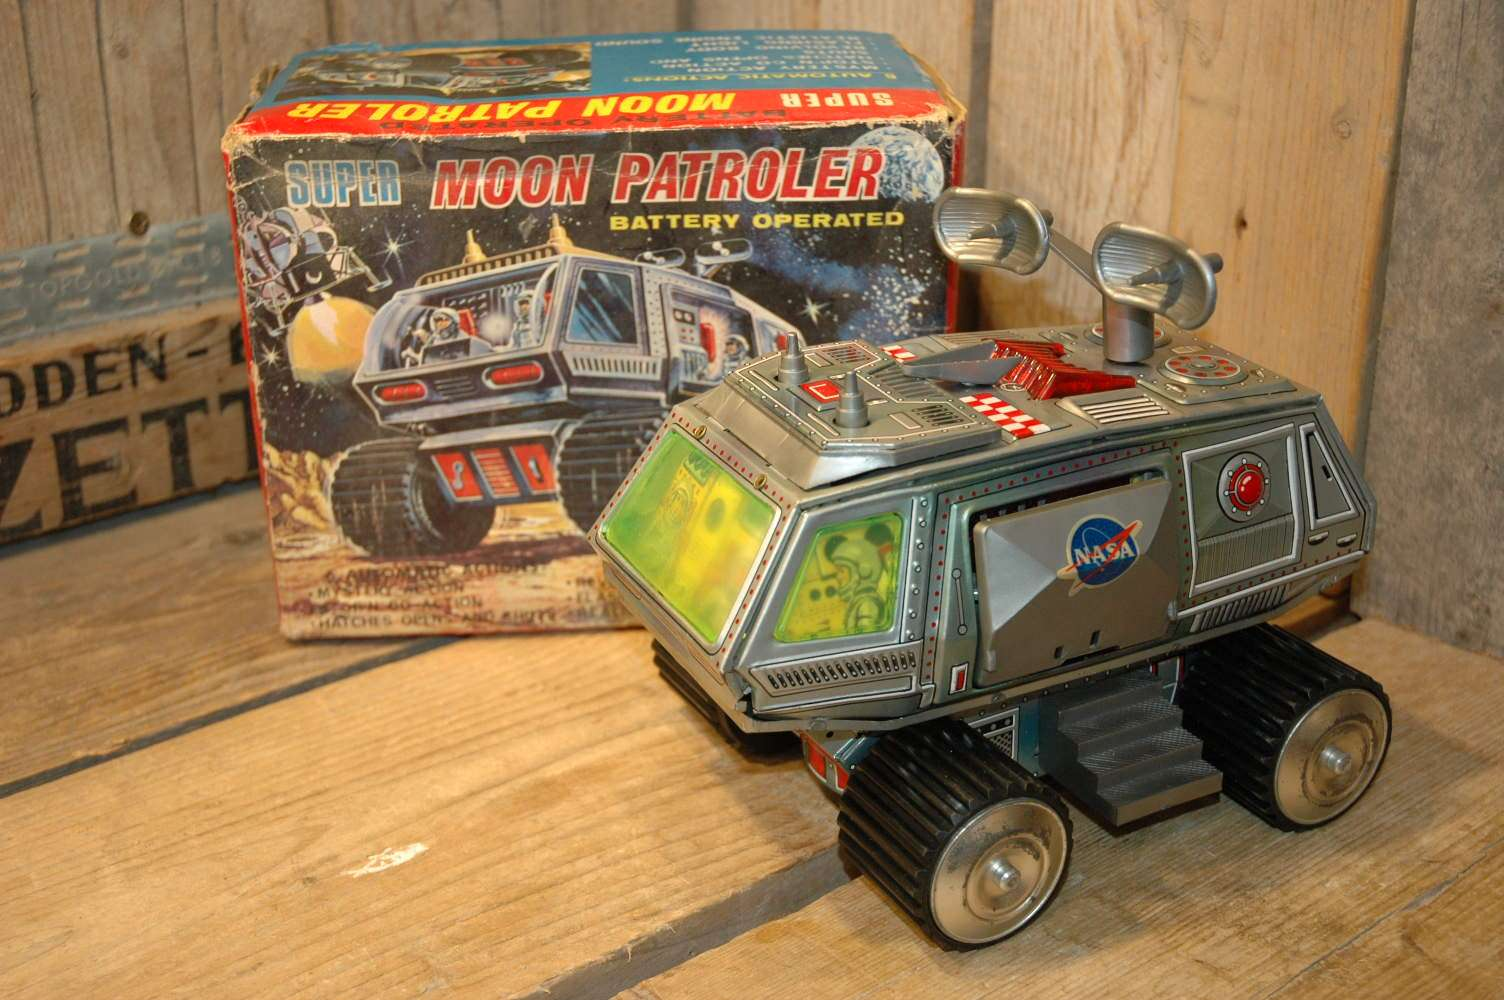 Junior Toys - Super Moon Patroler